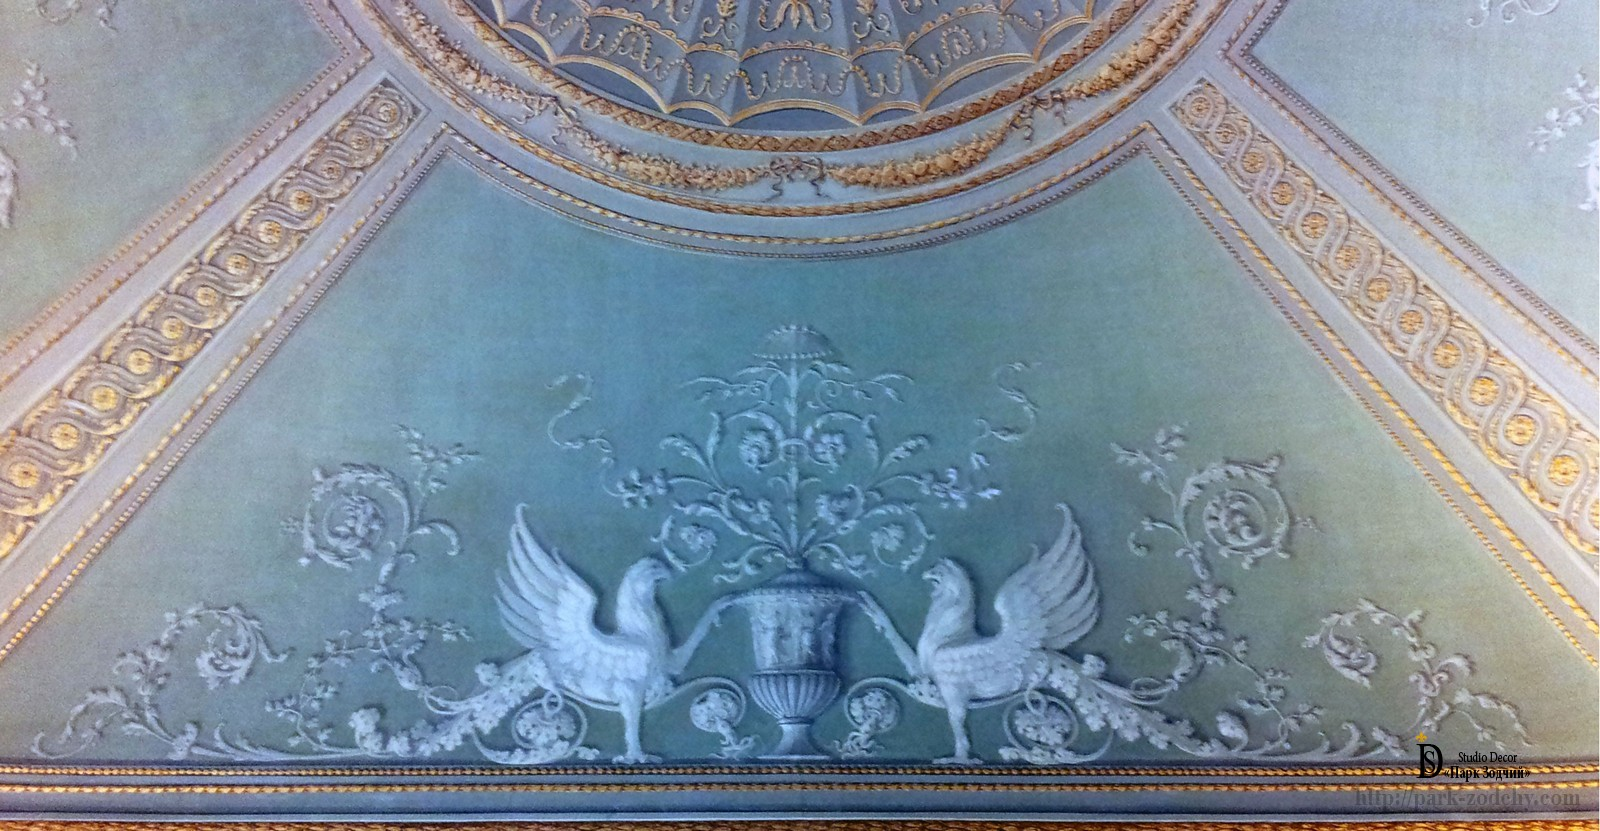 The grisaille technique of painting on the ceiling